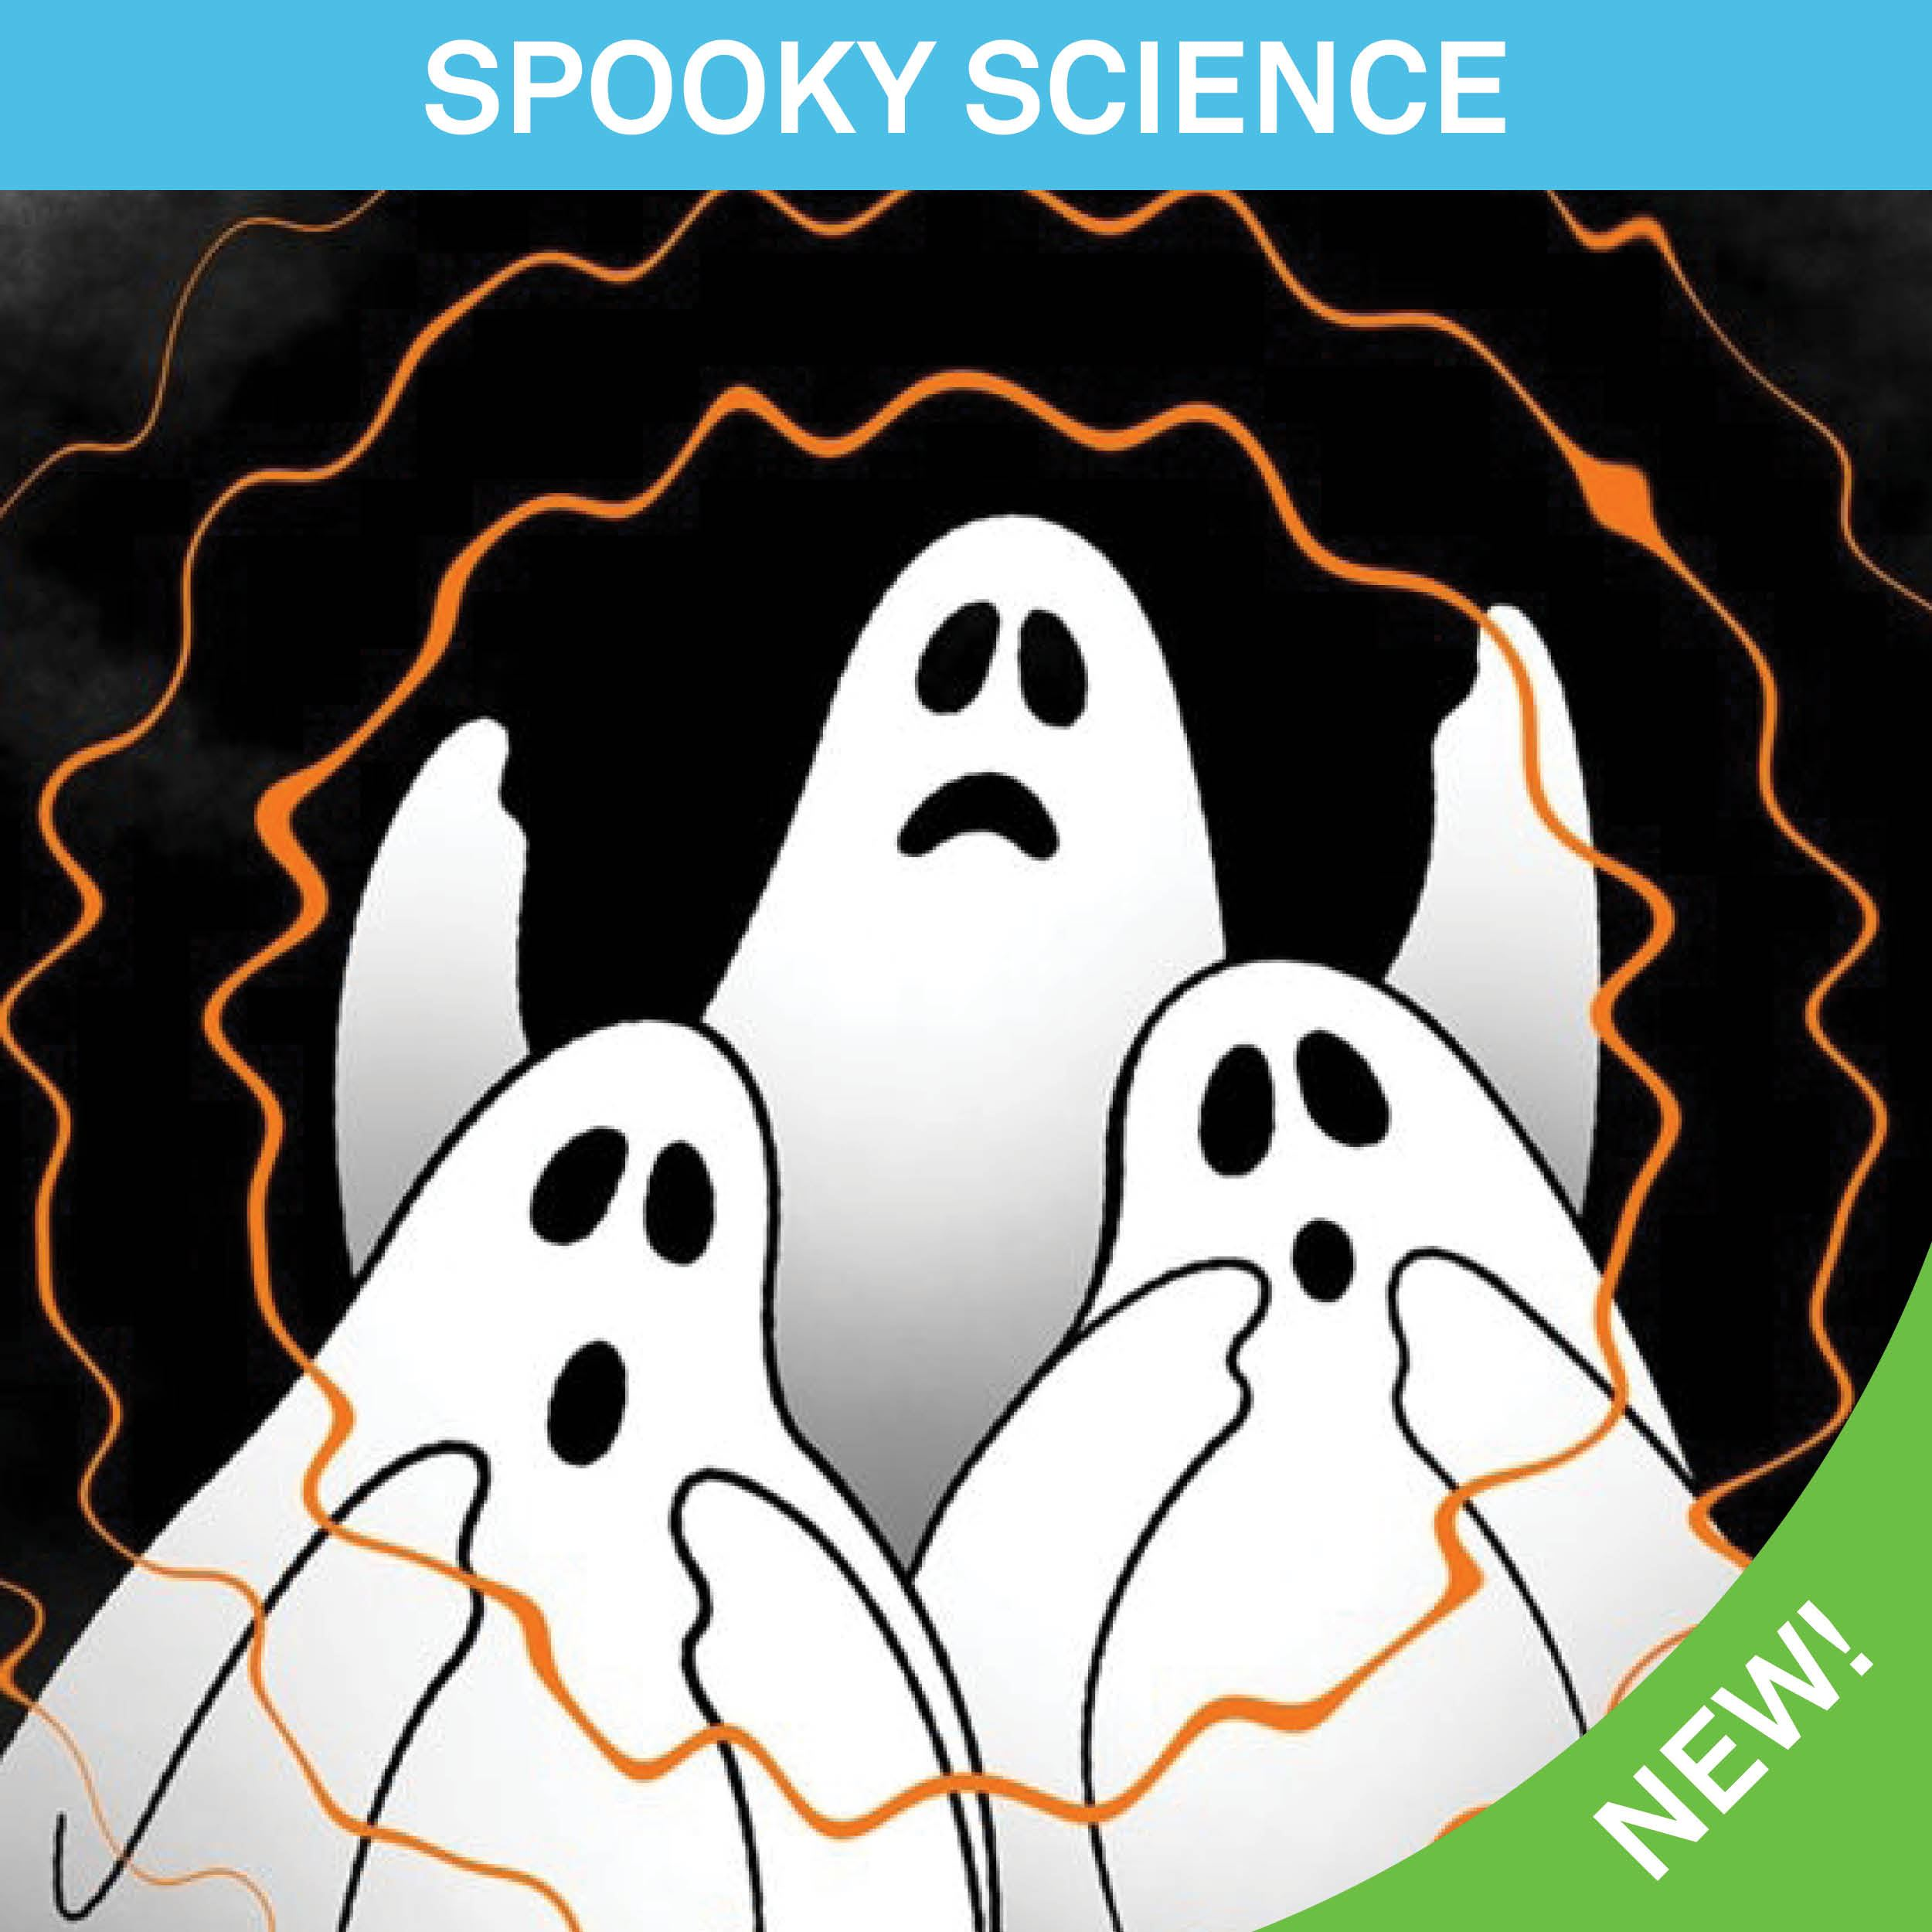 Spooky Science class offered